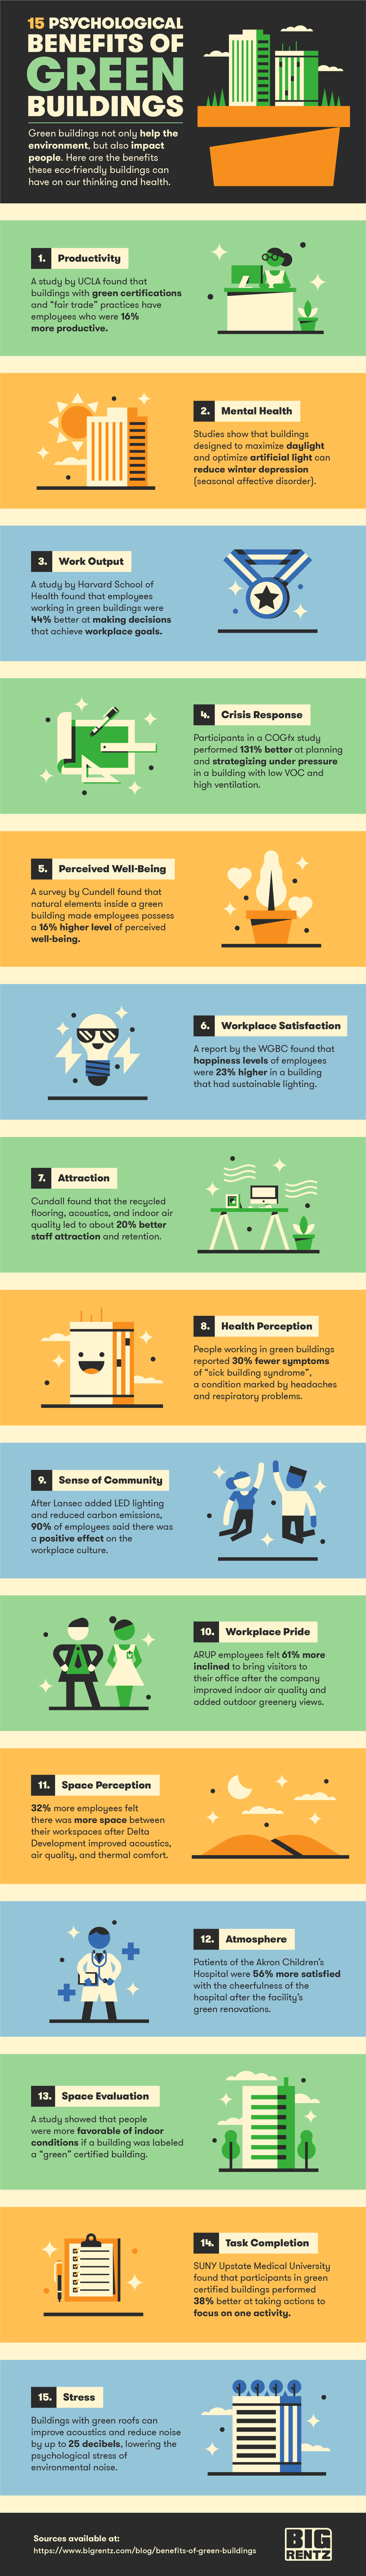 Psychological Benefits of Green Buildings infographic from BigRentz